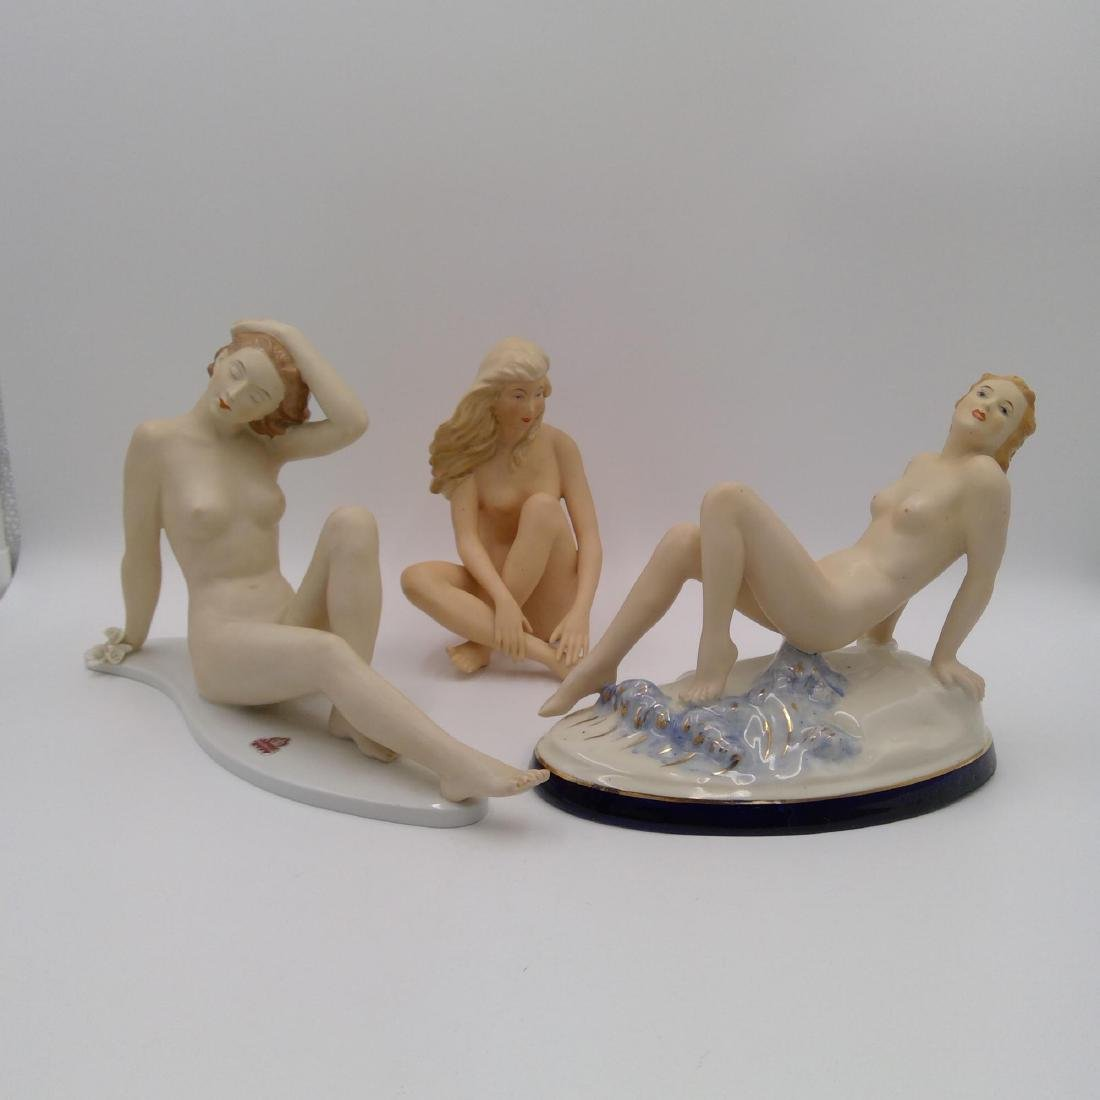 GROUP OF 3 NUDE ART DECO PORCELAIN FIGURINES